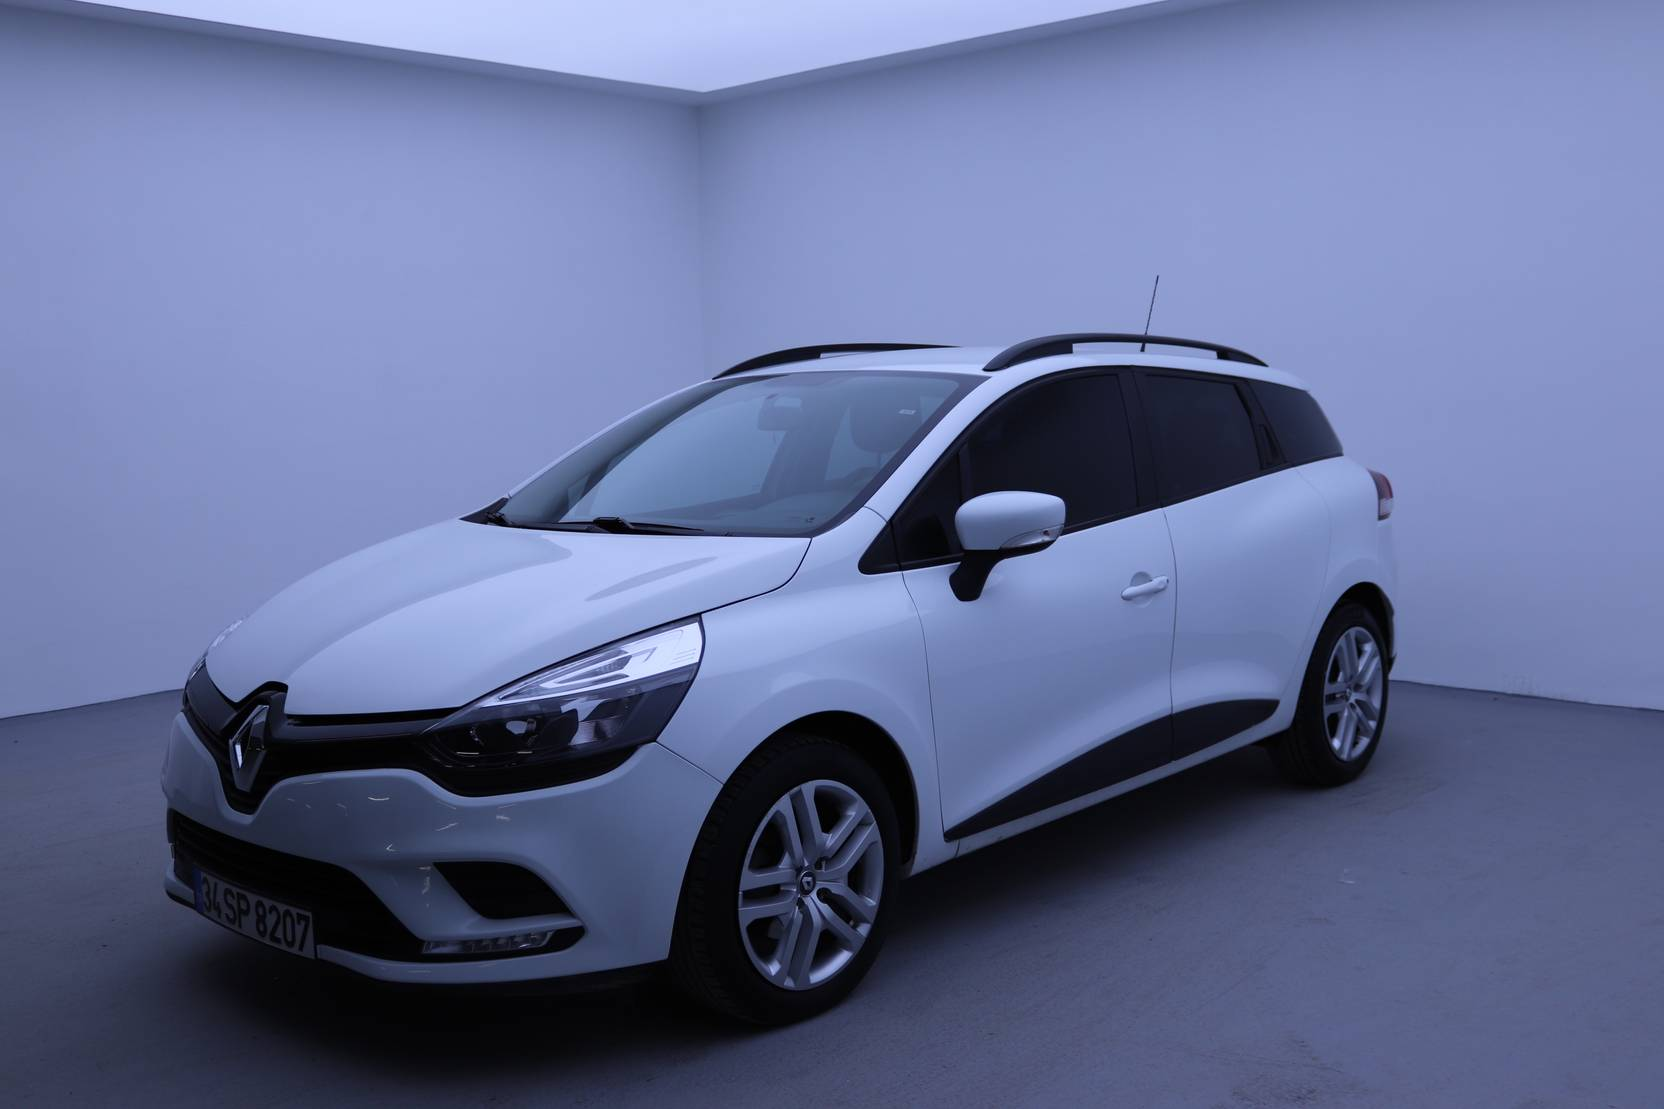 Renault Clio Sport Tourer dCi 75 Stop & Start, Joy detail1